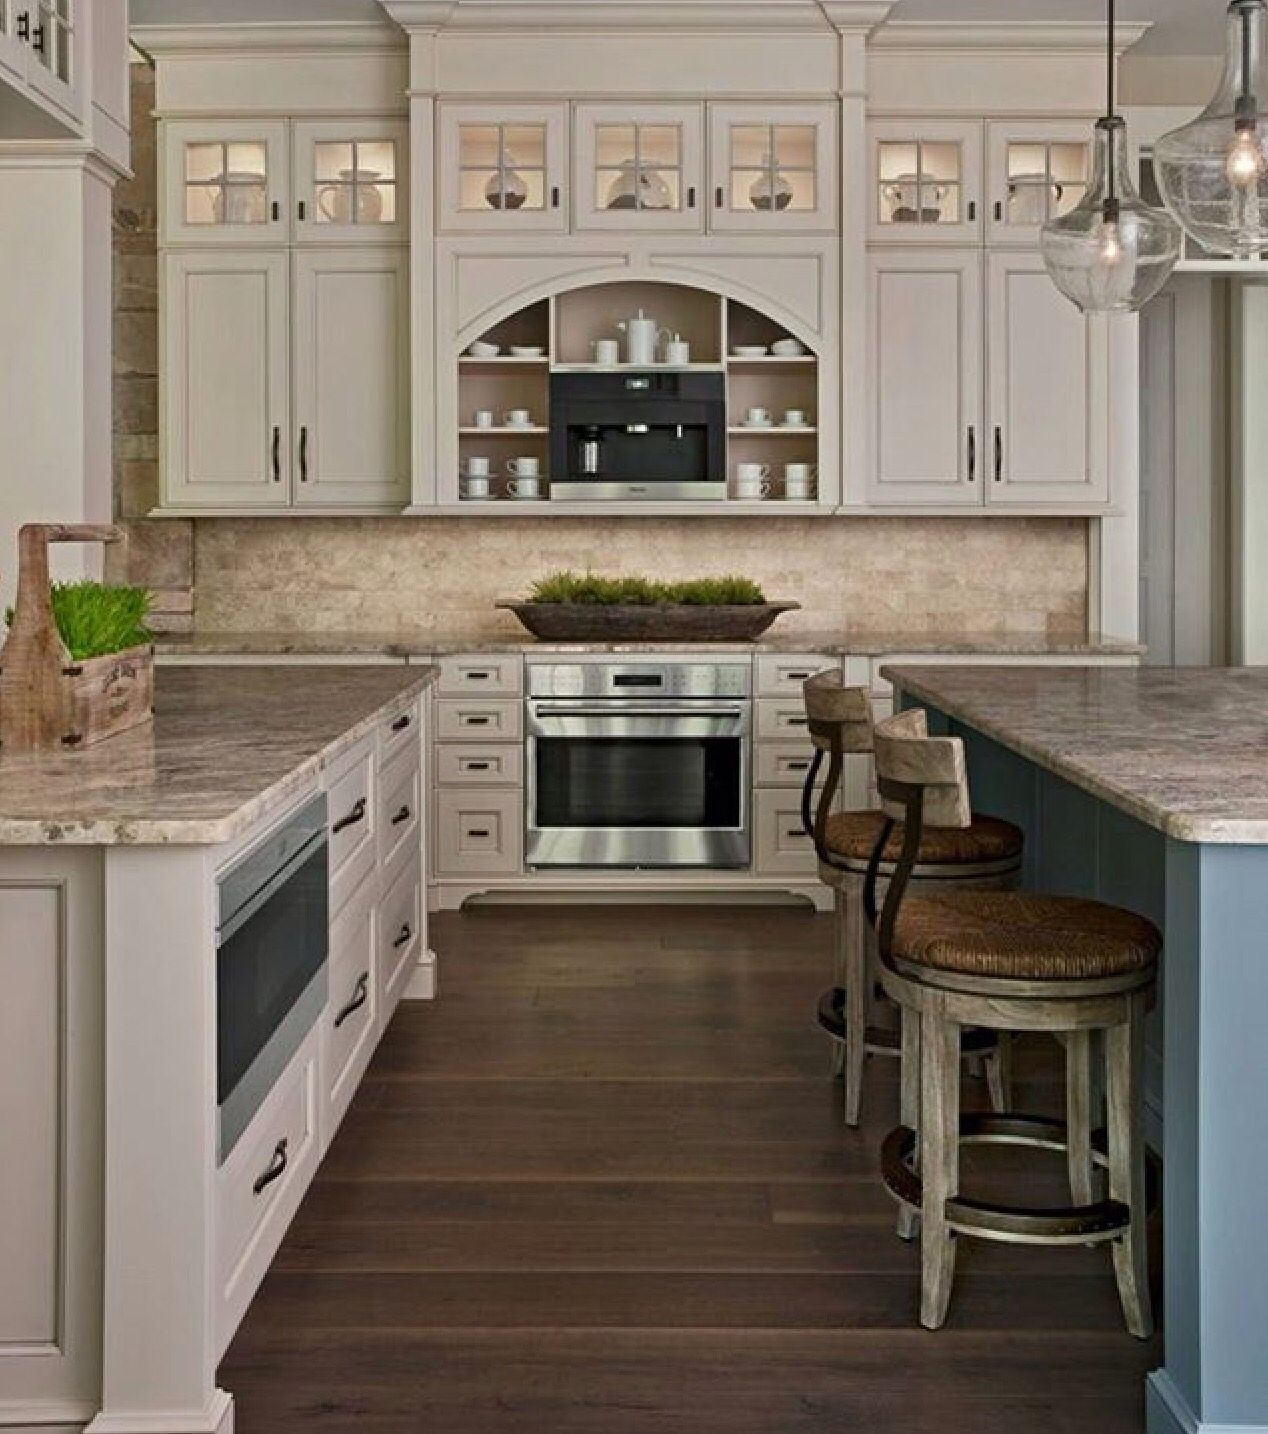 Love This Kitchen Cream Cabinets Travertine Backsplash Granite With Creams Bro Traditional Kitchen Design Backsplash For White Cabinets Kitchen Renovation